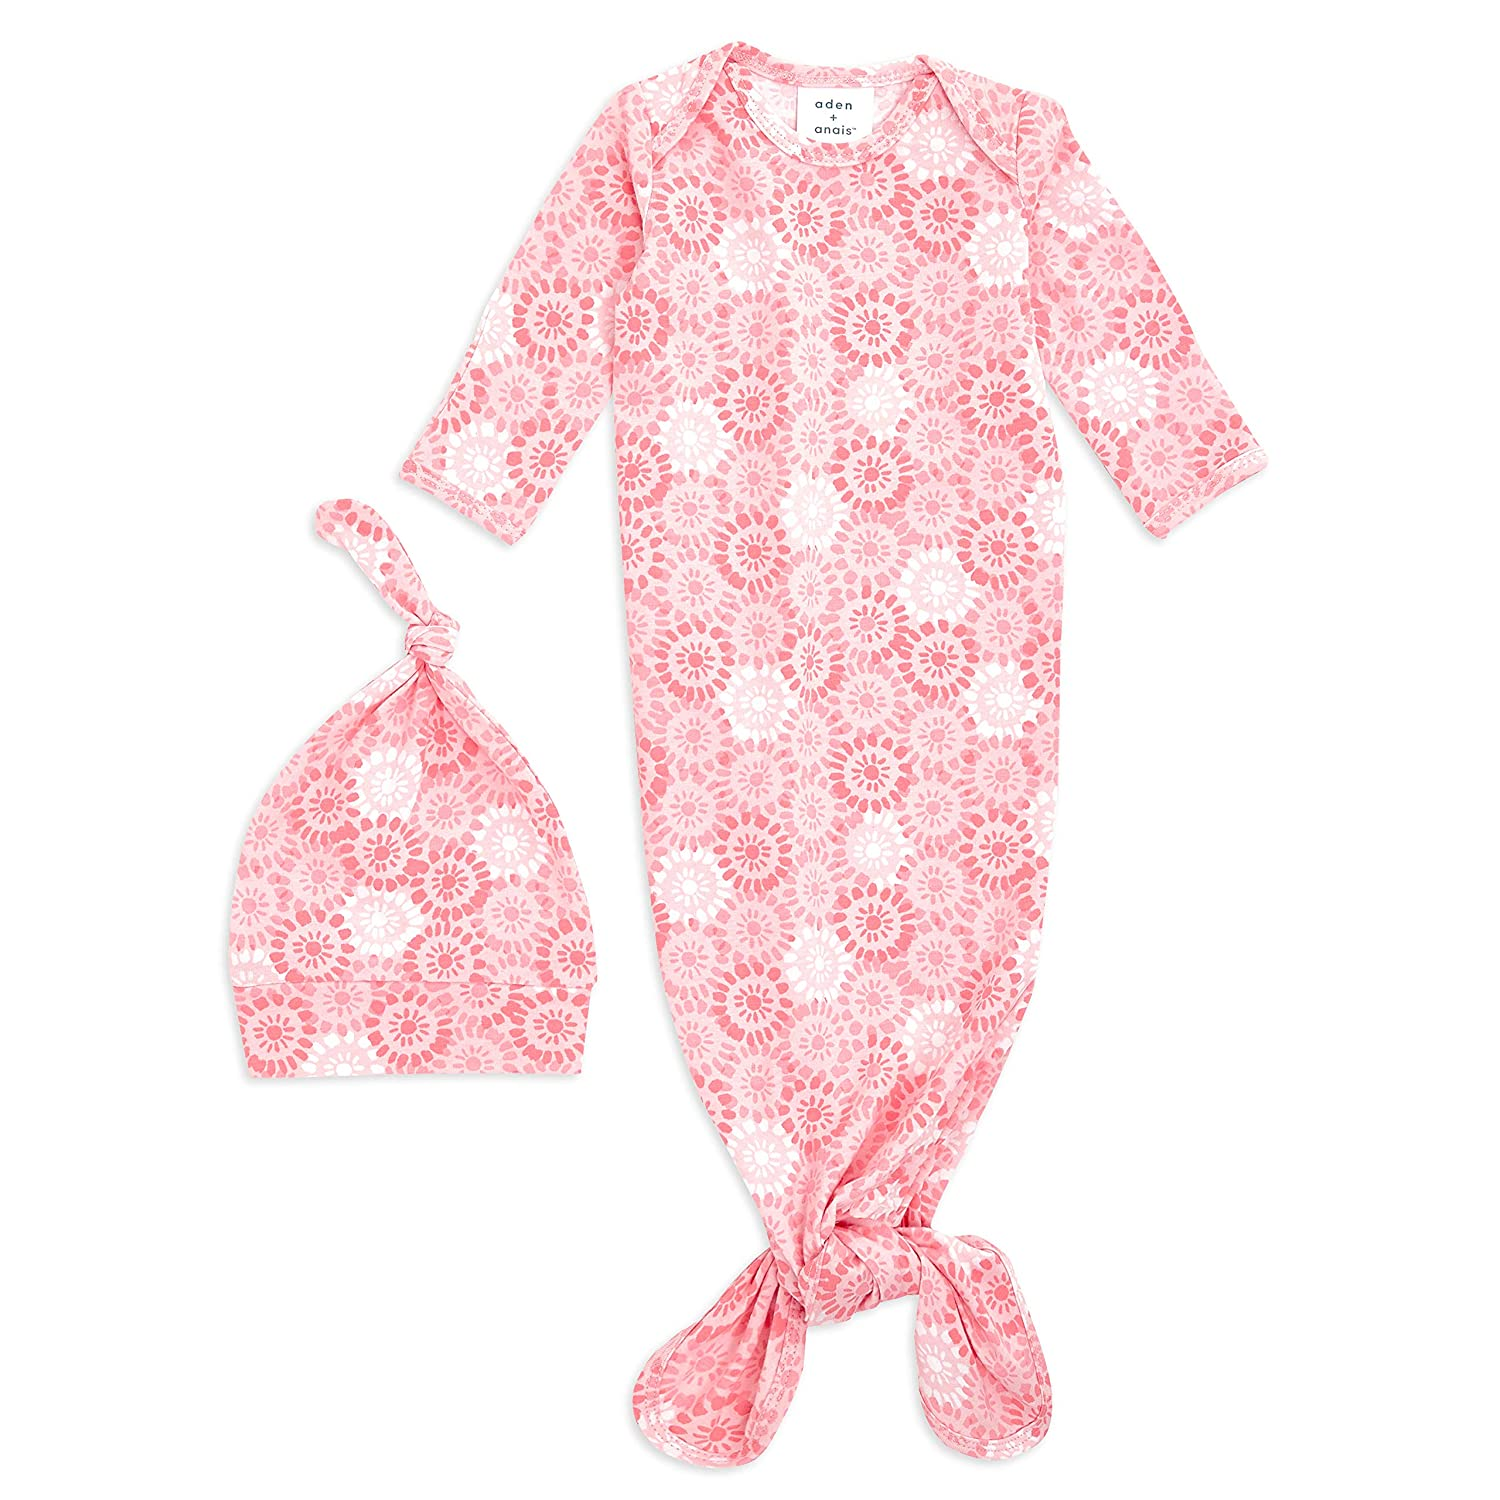 Infant Gown with Fold Over Mitten Cuffs aden Perennial anais Comfort Knit Knotted Newborn Baby Gown and Hat 2 Piece Set Super Soft Cotton with Spandex 0-3 Months